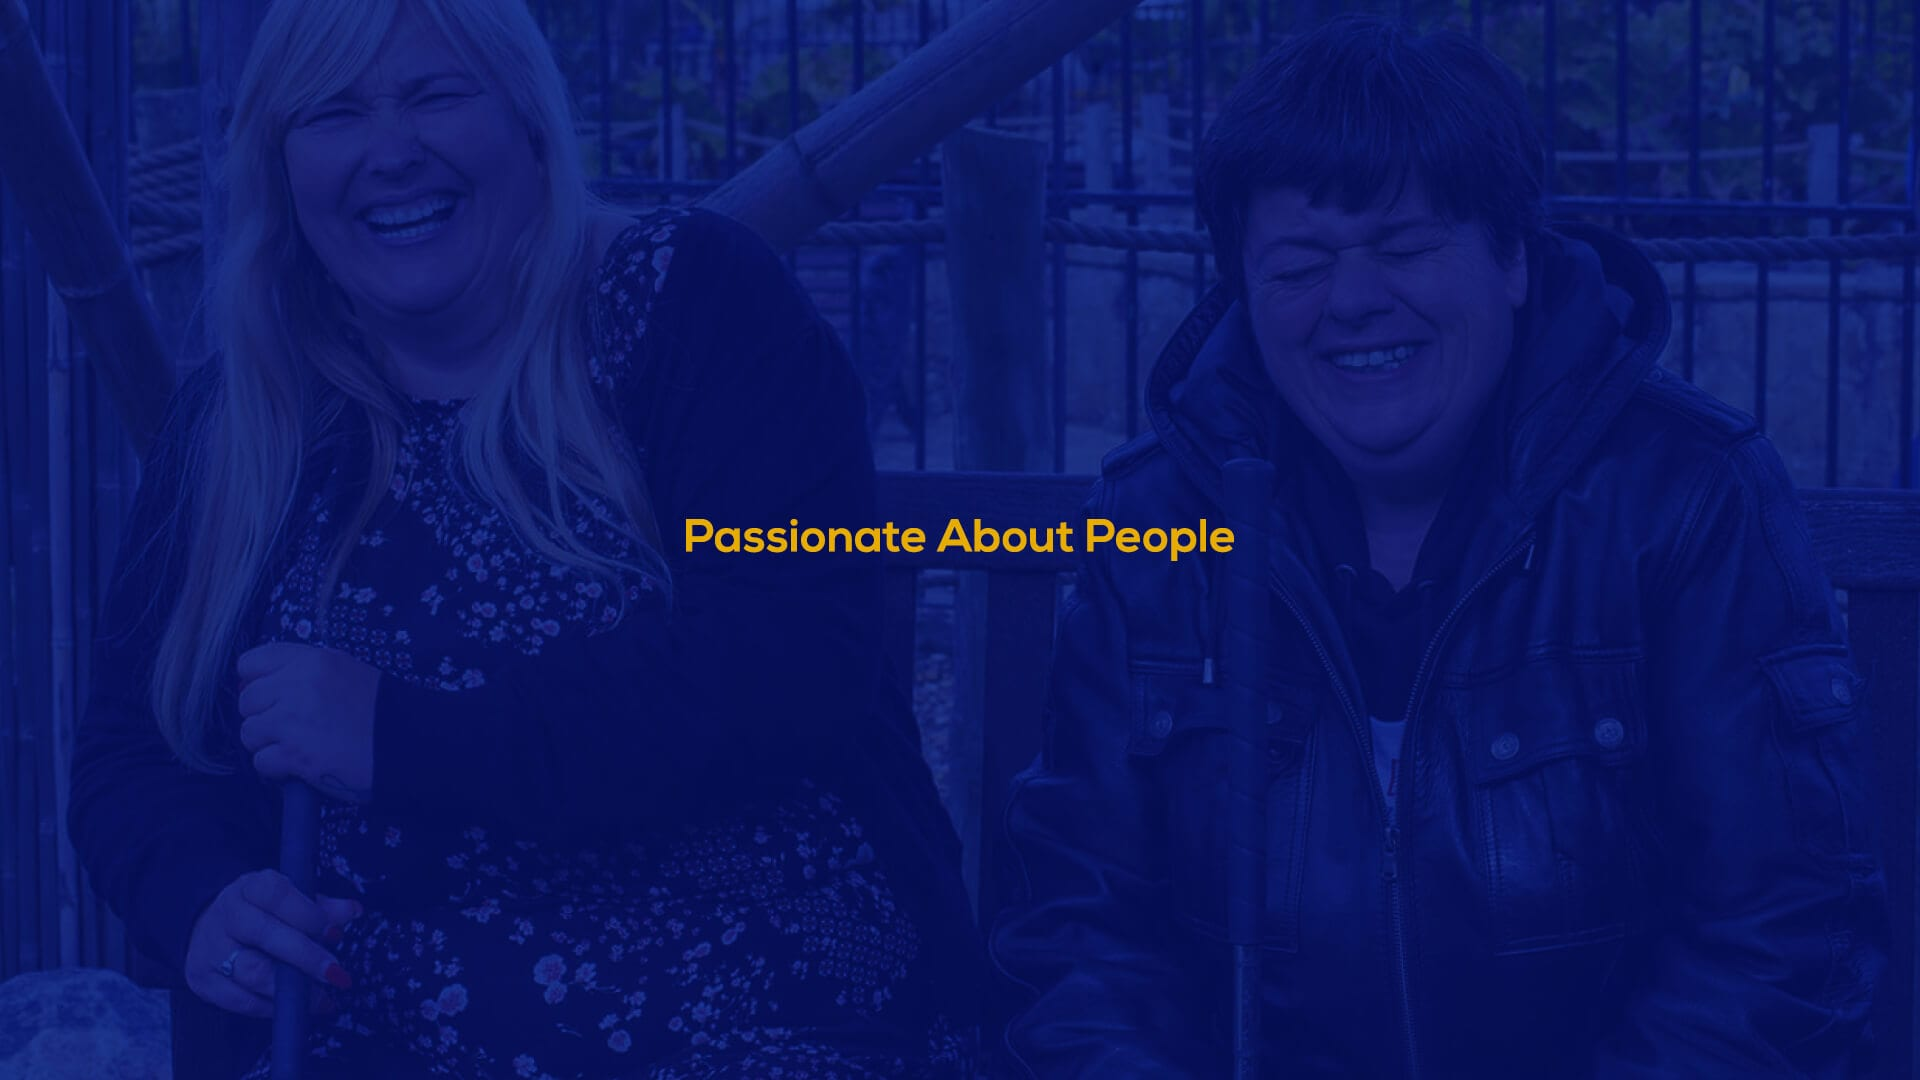 Ambient - Passionate About People